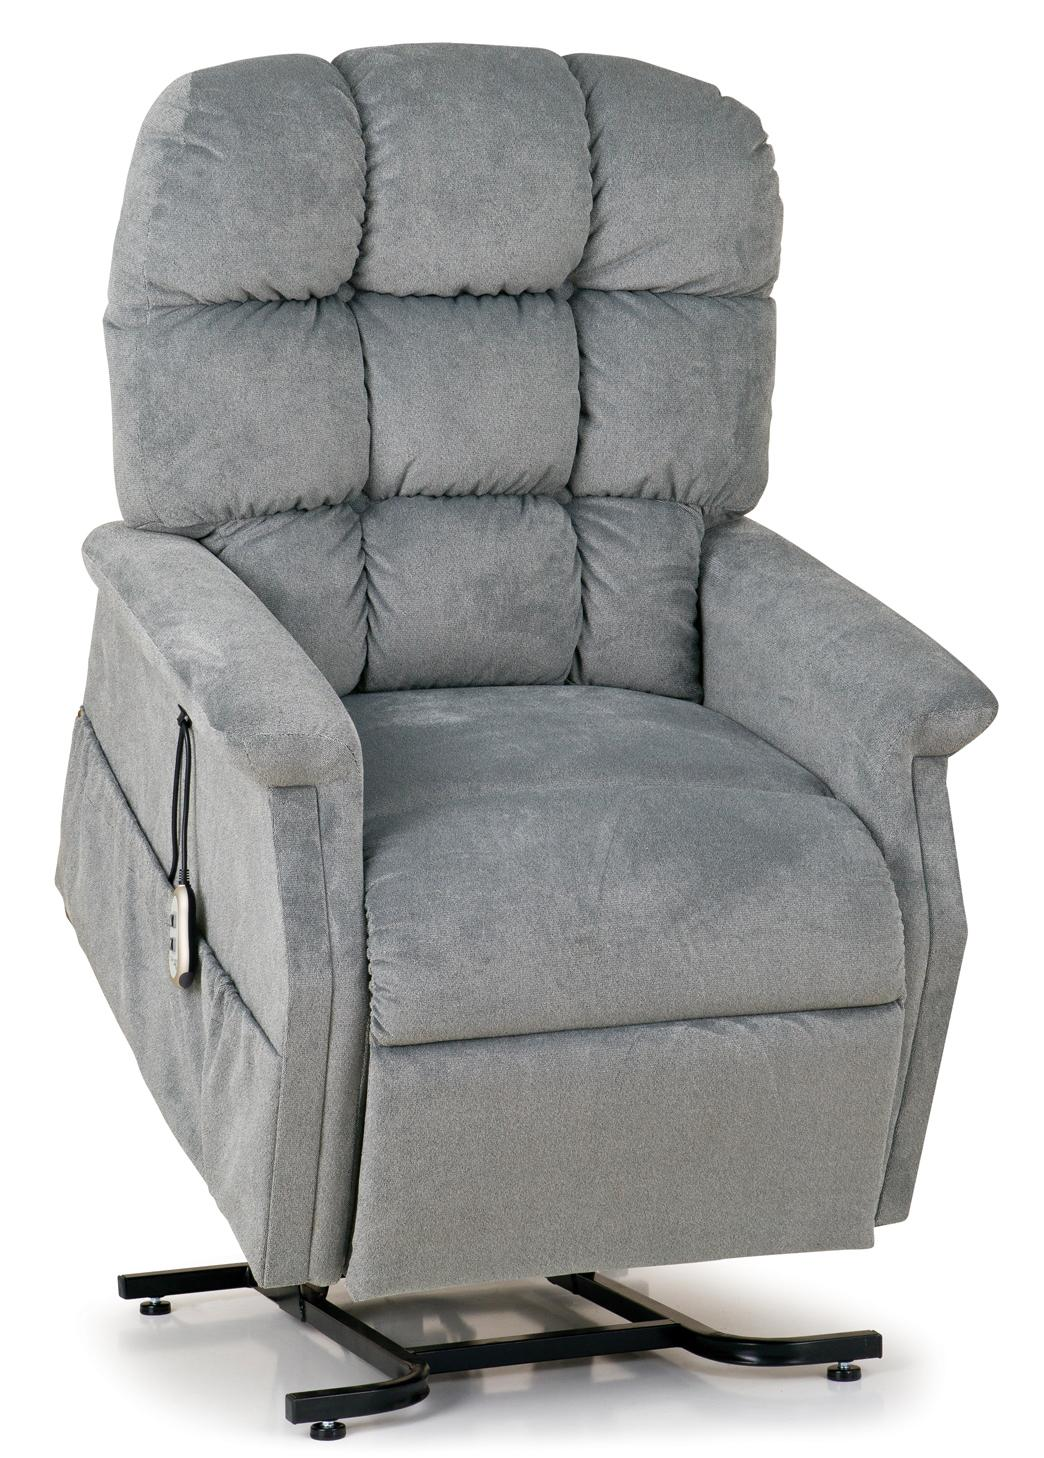 Tranquility Lift Recliner by UltraComfort at Suburban Furniture